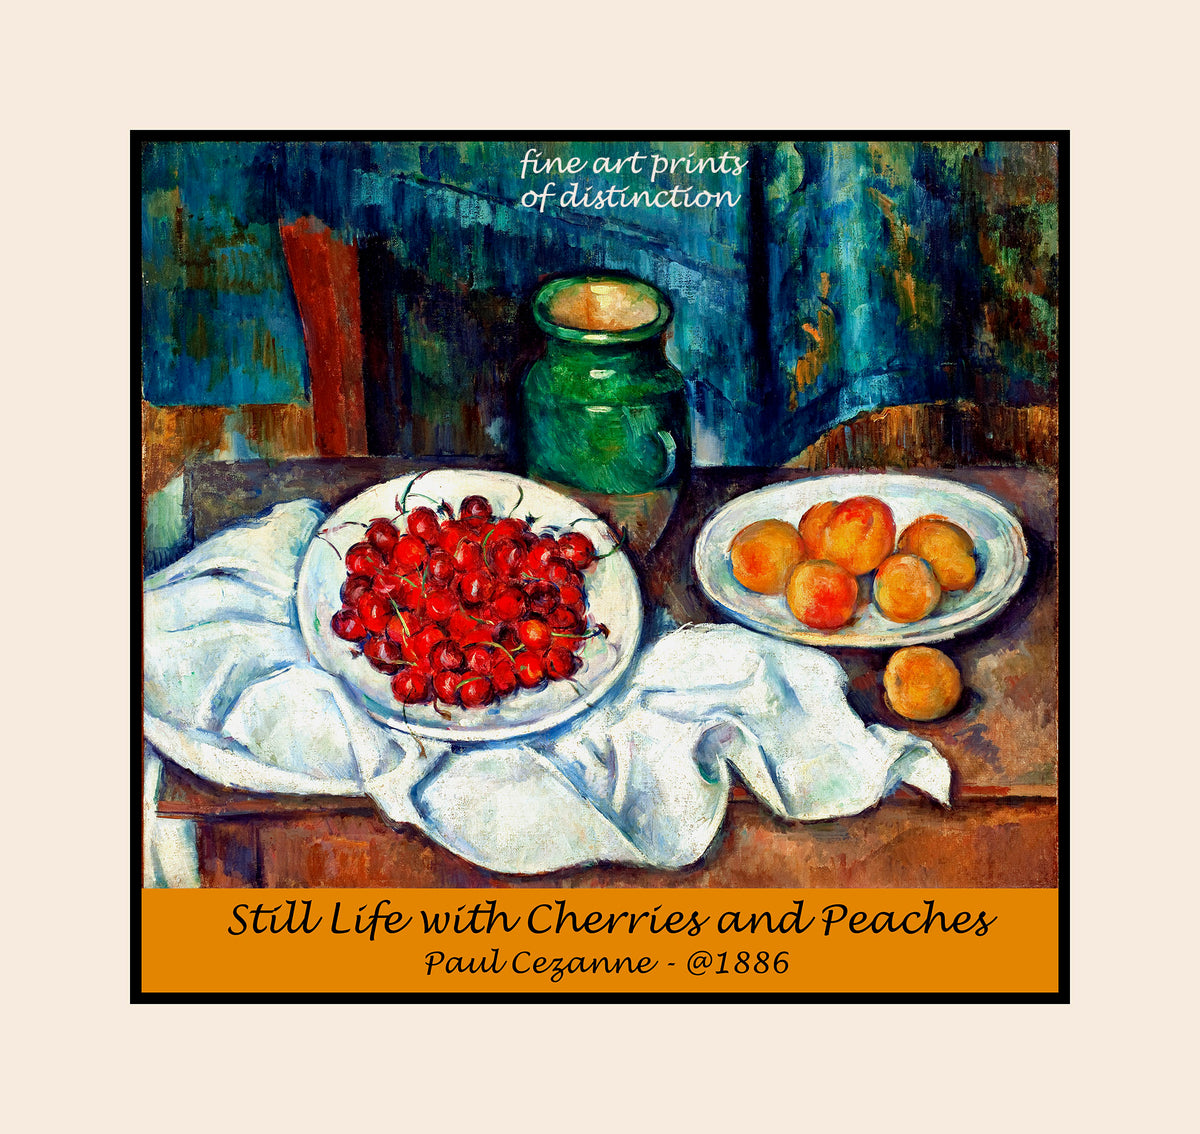 Premium poster of Still Life with Cherries and Peaches painted by French artist Paul Cezanne